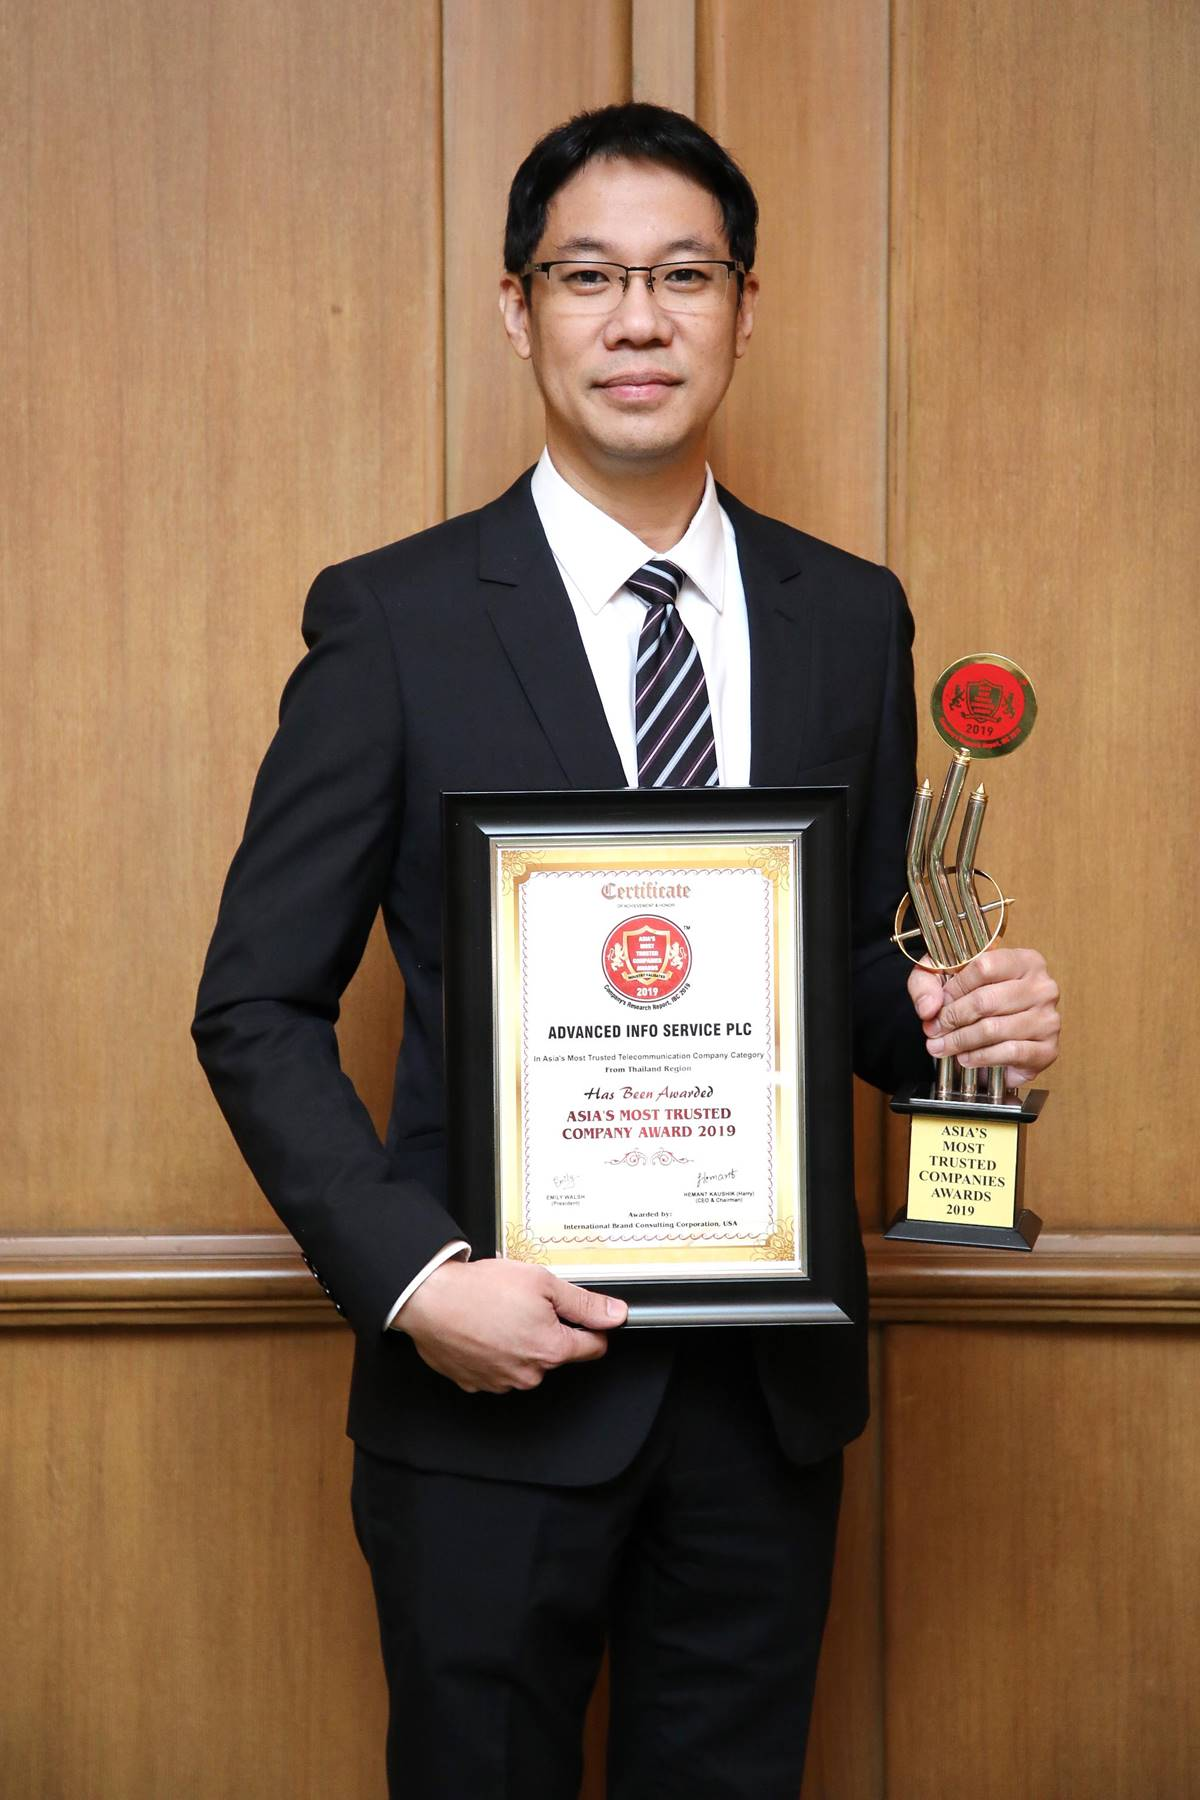 Asia's Most Trusted Company Awards 2019